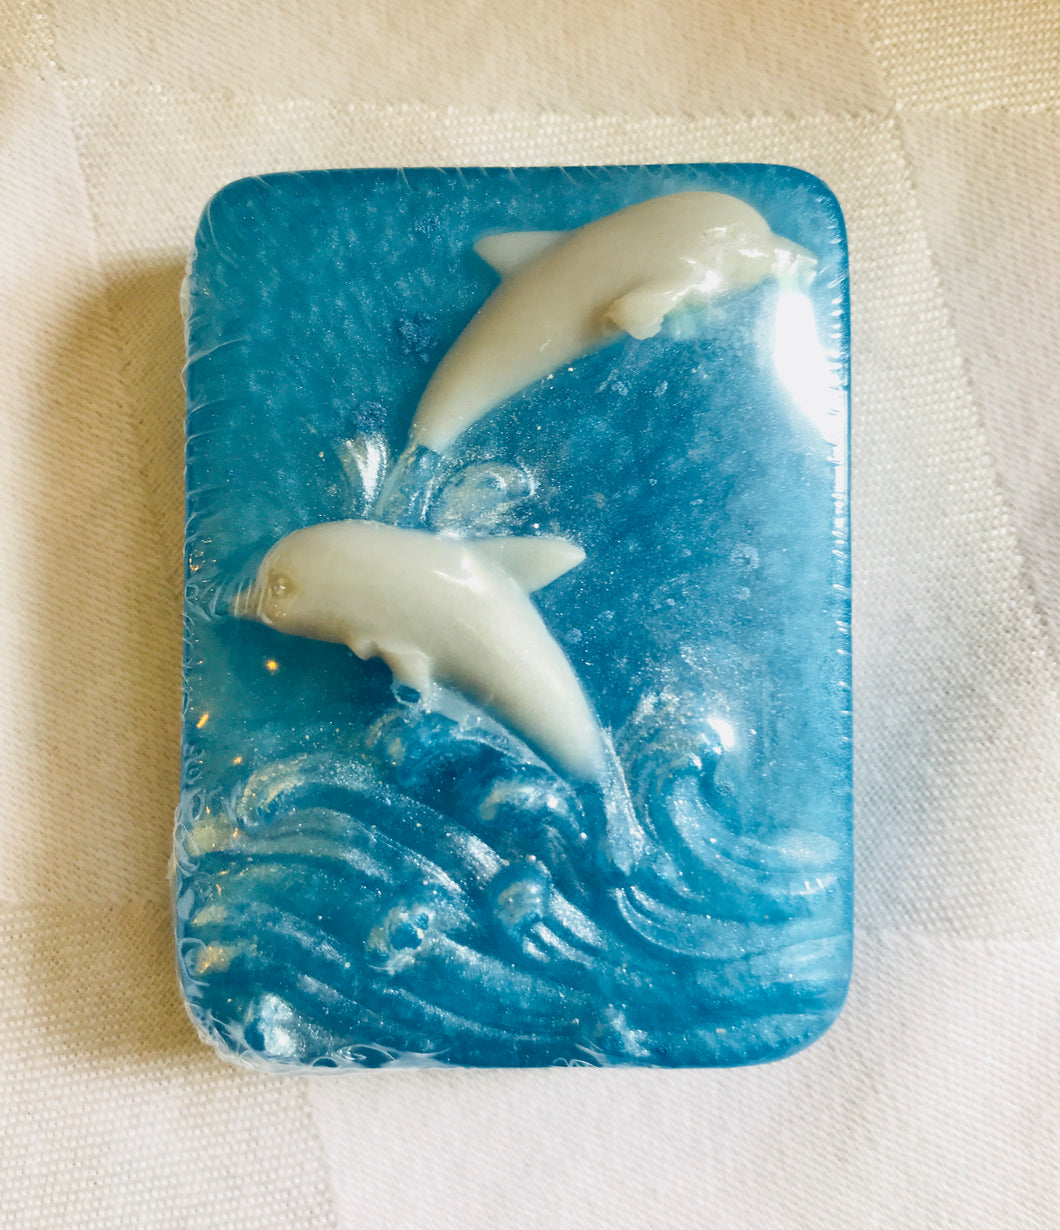 Smaller Dolphin Soap